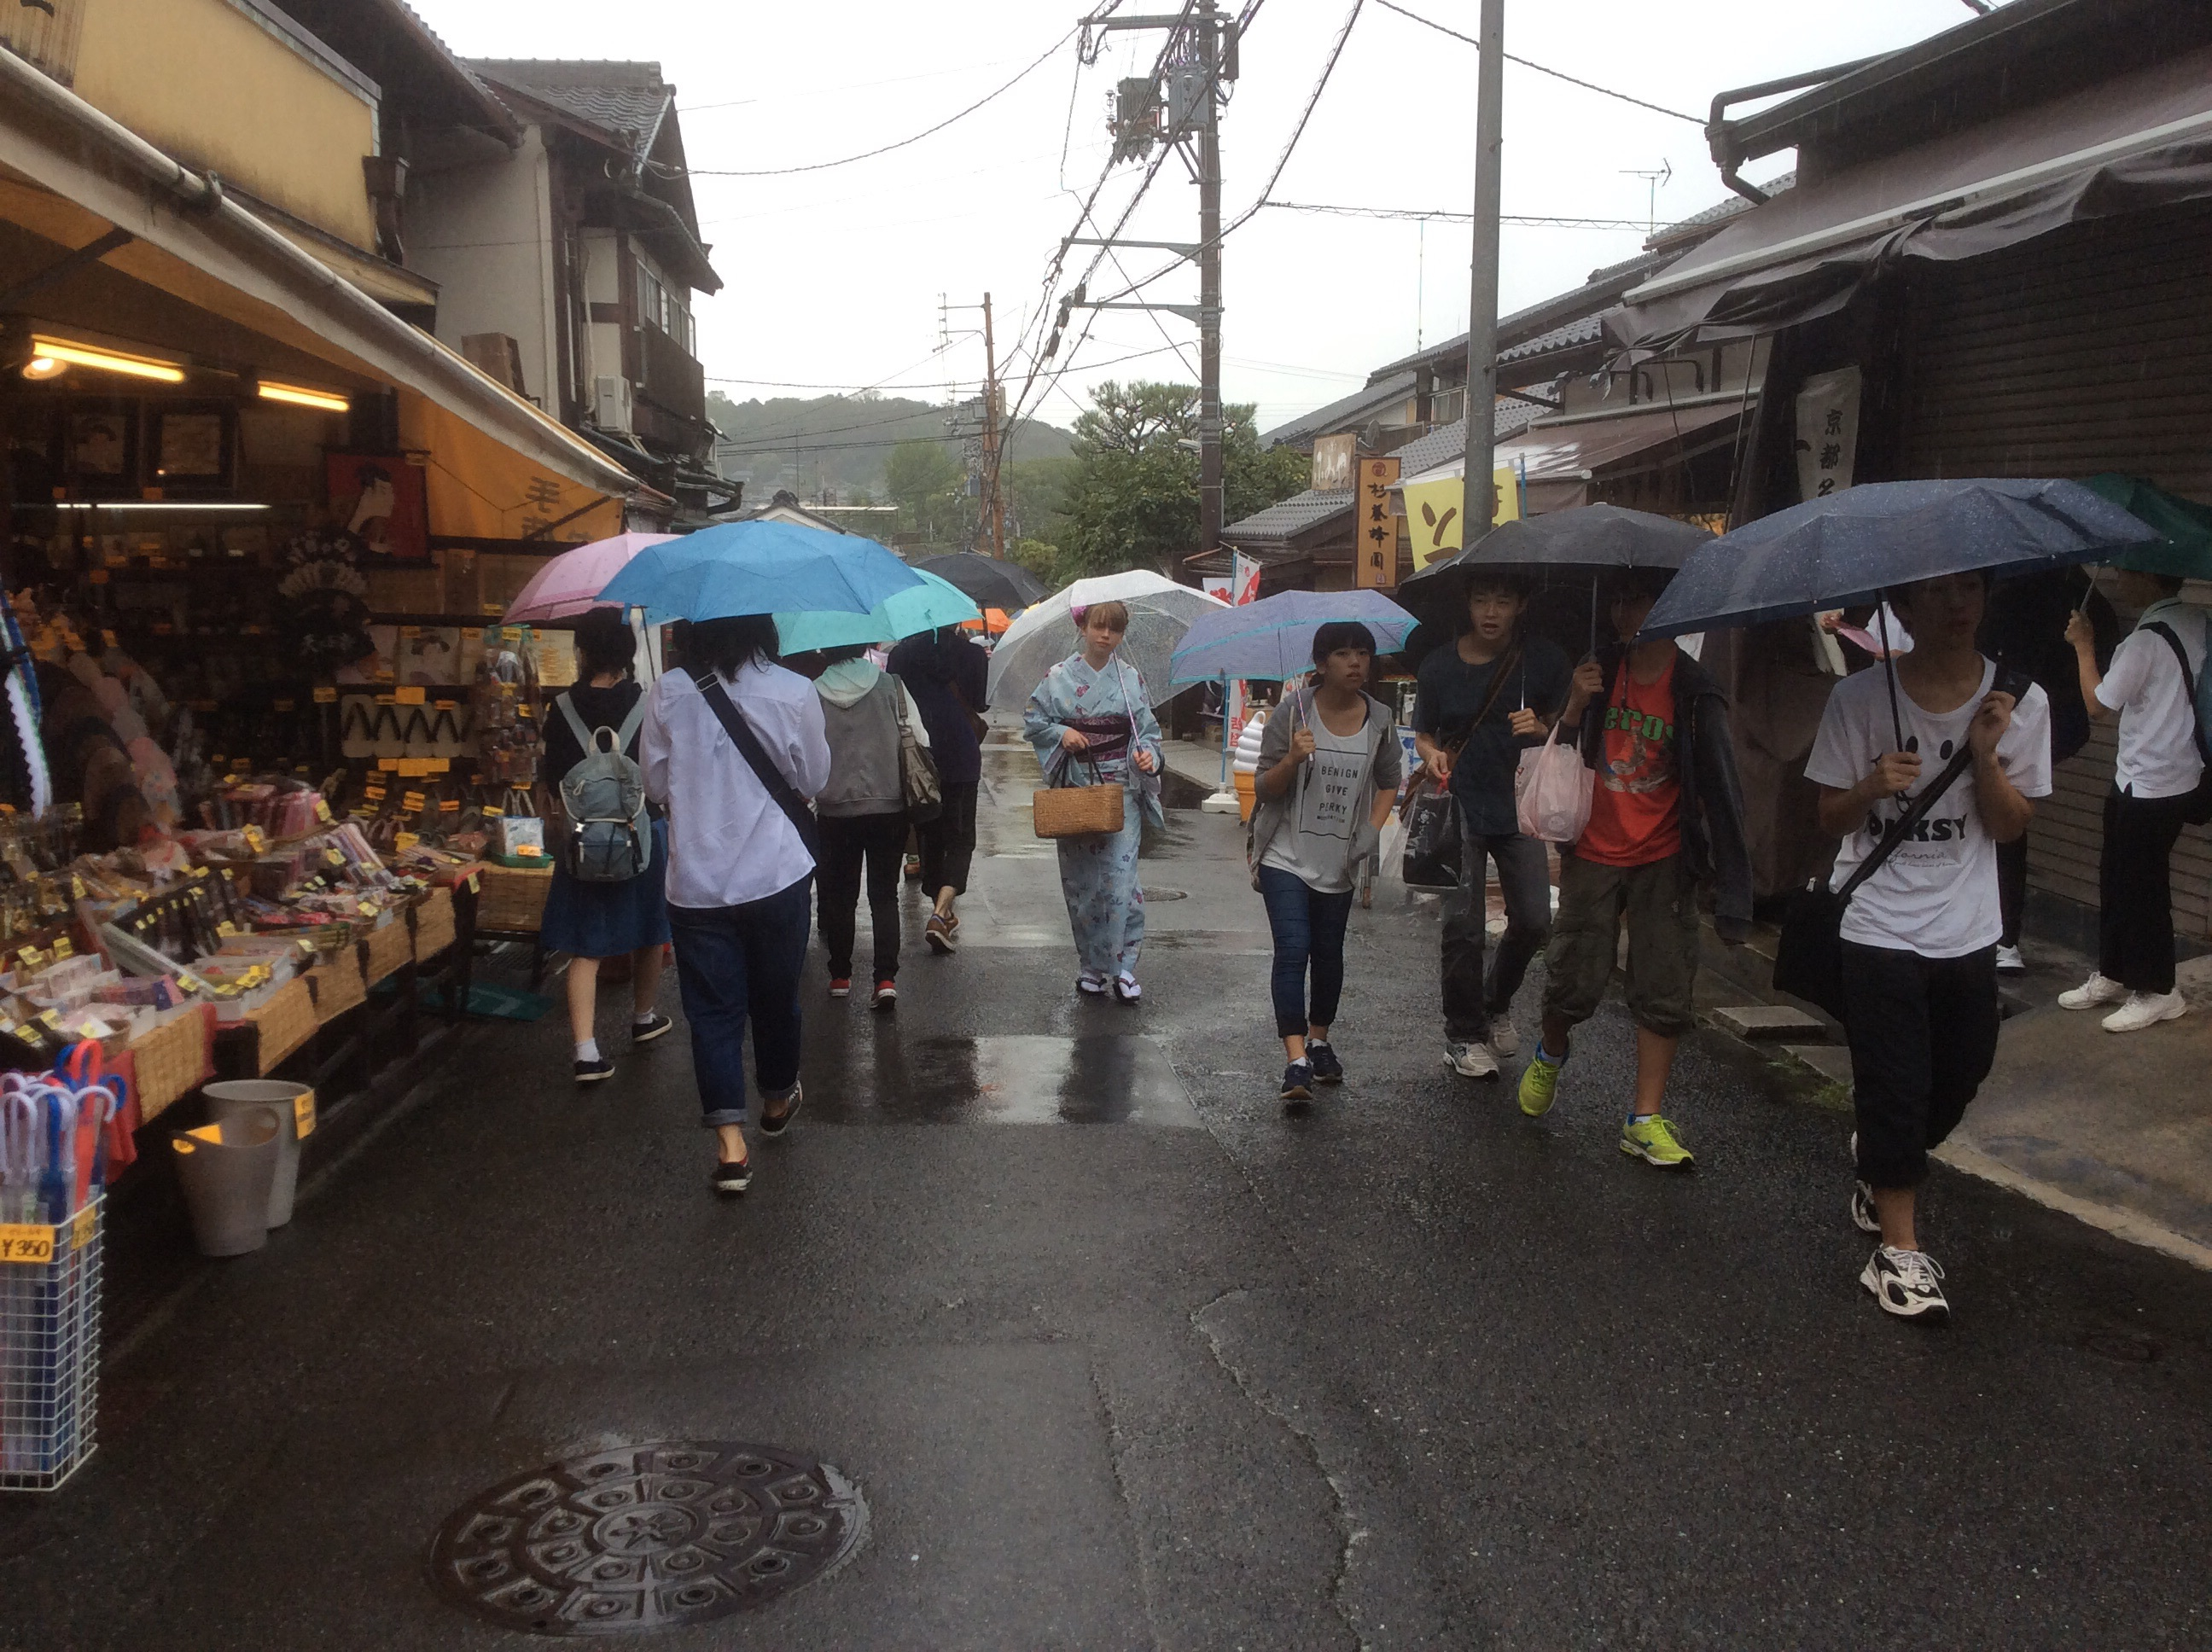 It was quite rainy and difficult to run inside in a kimono.